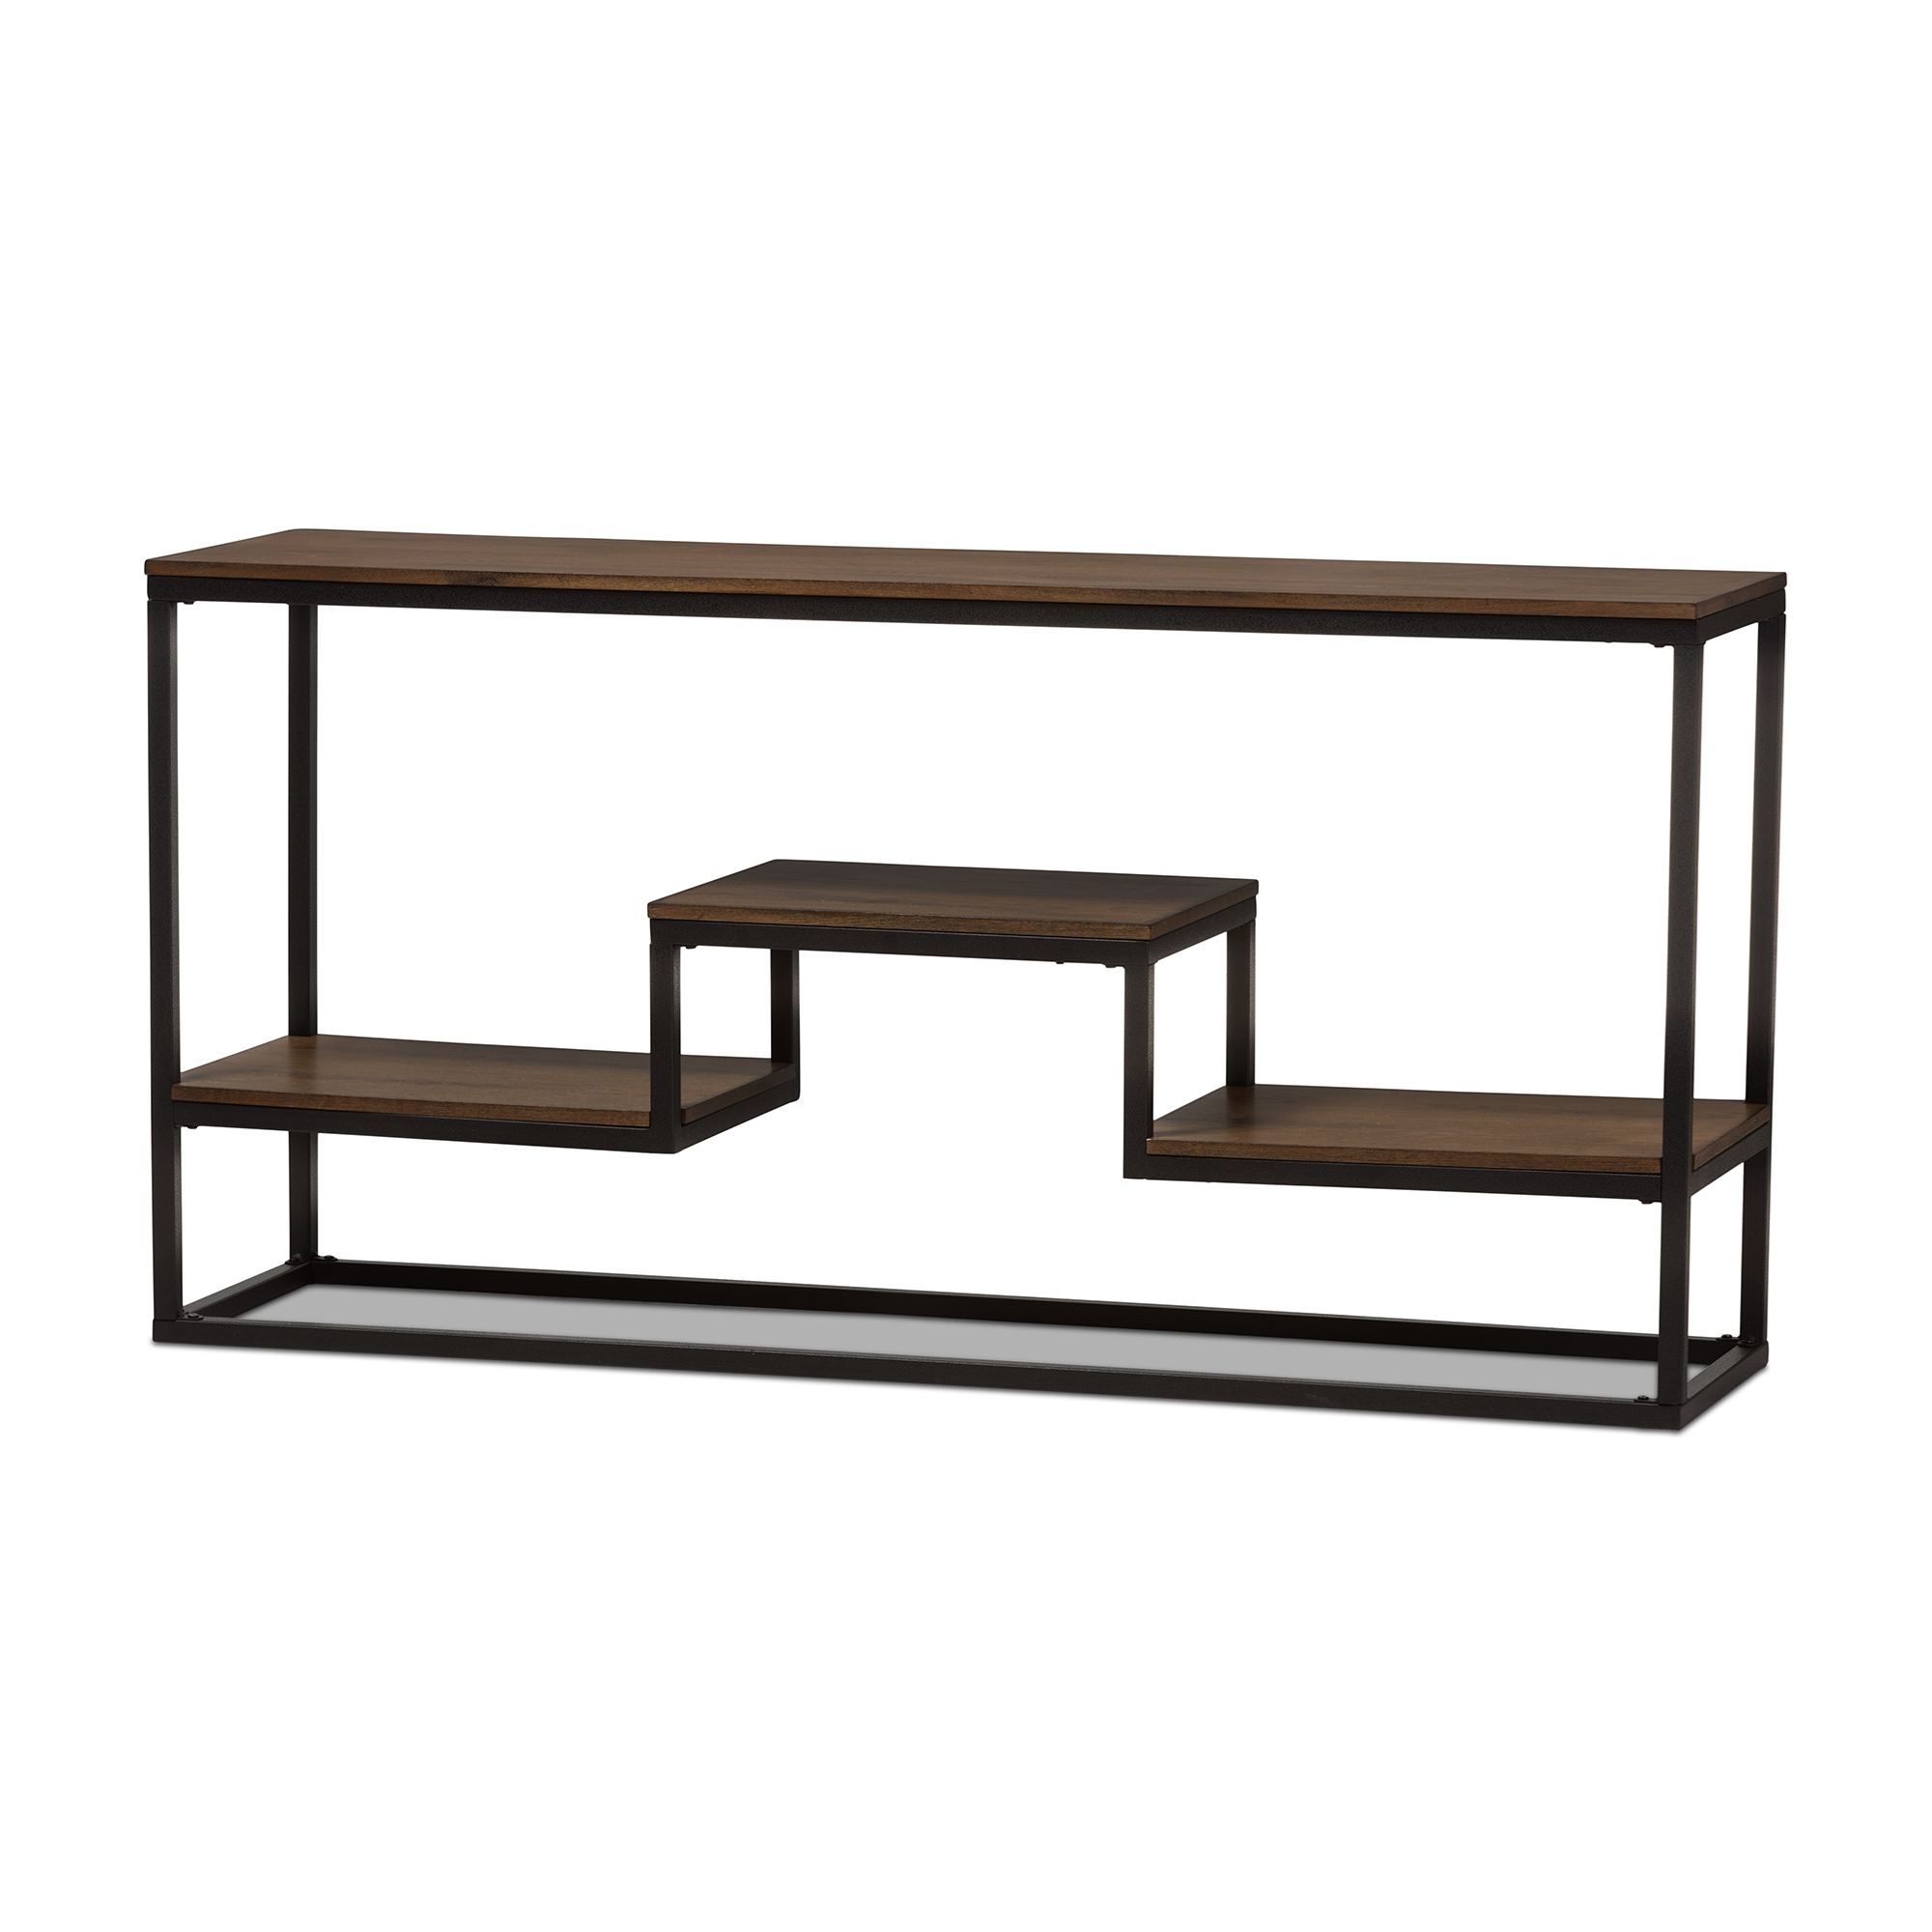 Old Baxton Studio Doreen Rustic Industrial Style Black Texturedfinished Metal Distressed Wood Console Table Wholesale Console Table Wholesale Living Room Furniture houzz-02 Metal Console Table